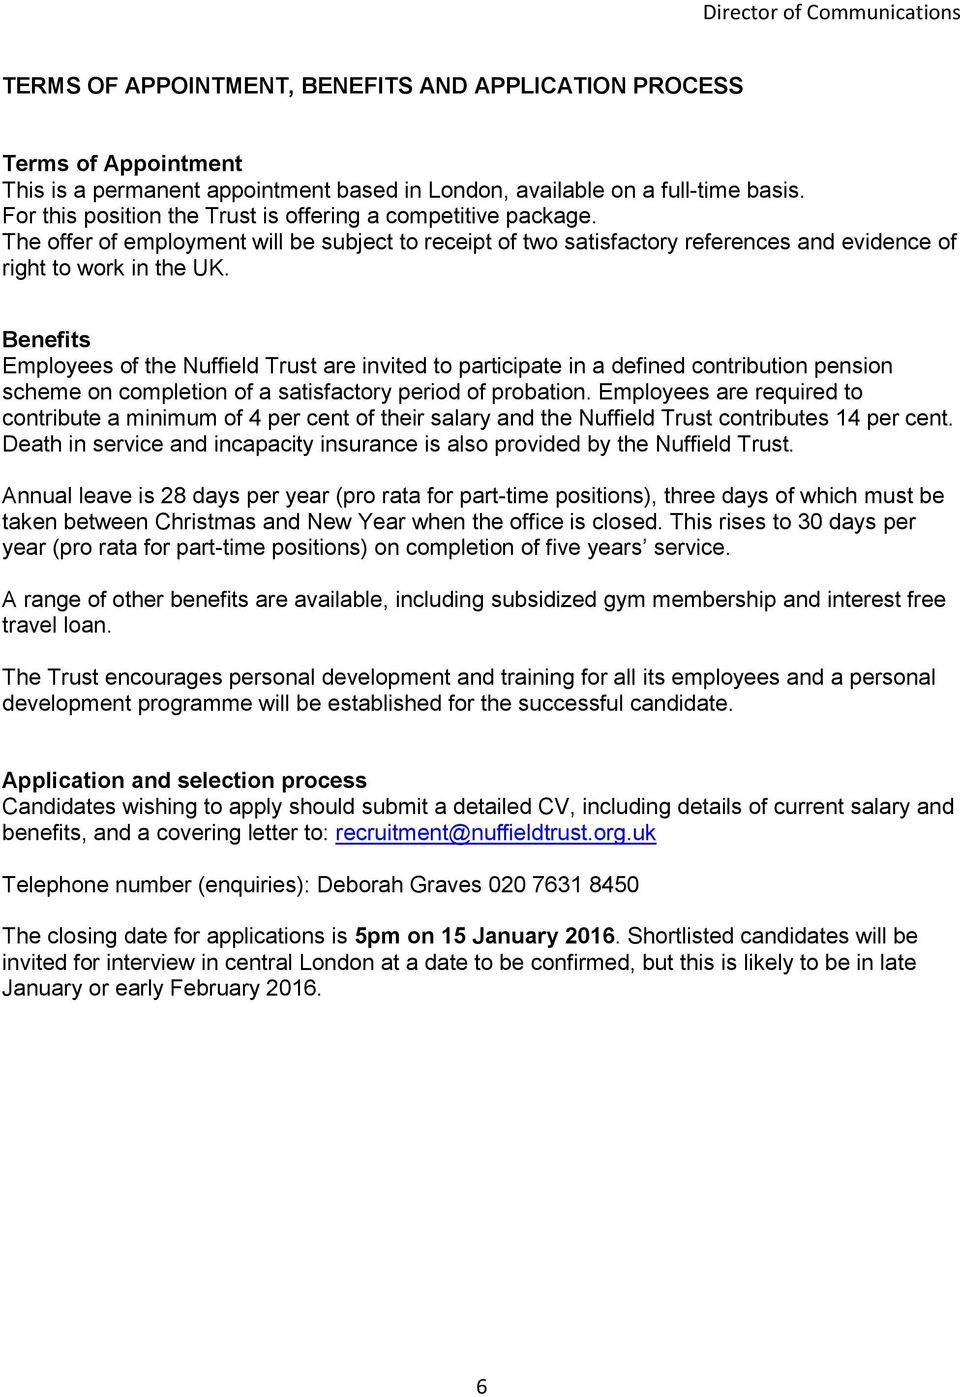 Benefits Employees of the Nuffield Trust are invited to participate in a defined contribution pension scheme on completion of a satisfactory period of probation.